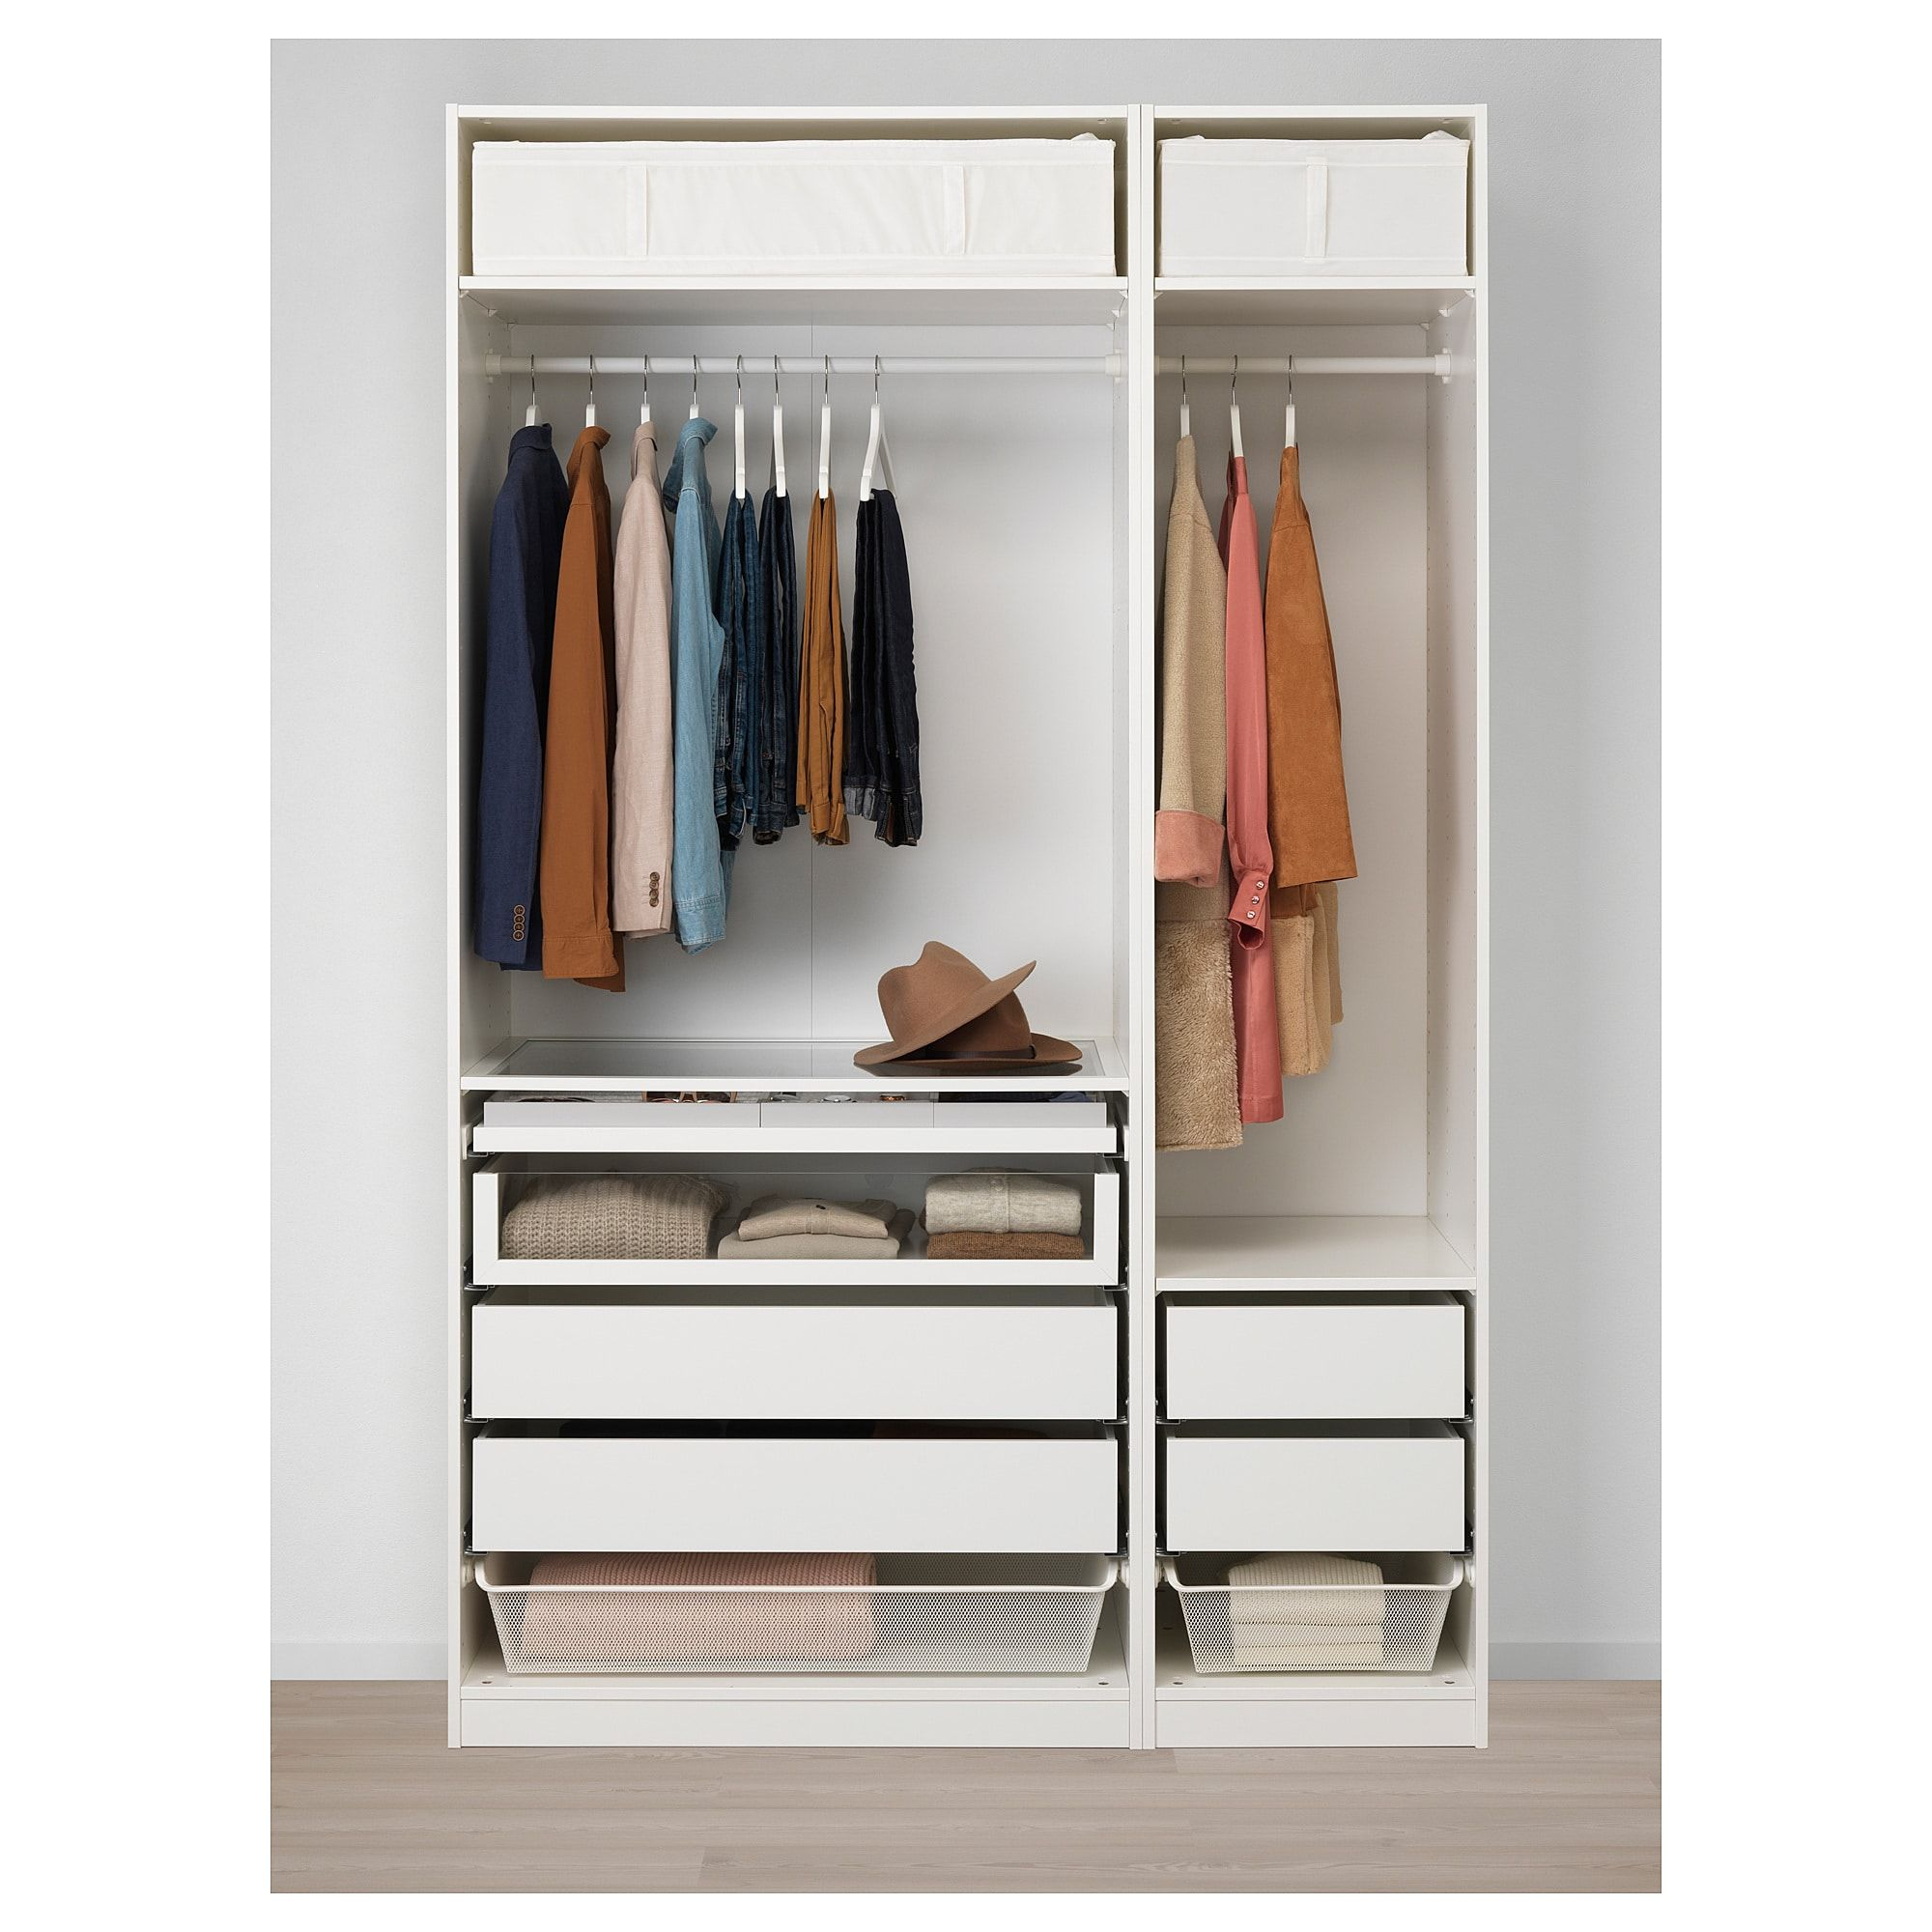 Furniture Home Furnishings Find Your Inspiration In 2021 Ikea Pax Wardrobe Pax Wardrobe Ikea Pax